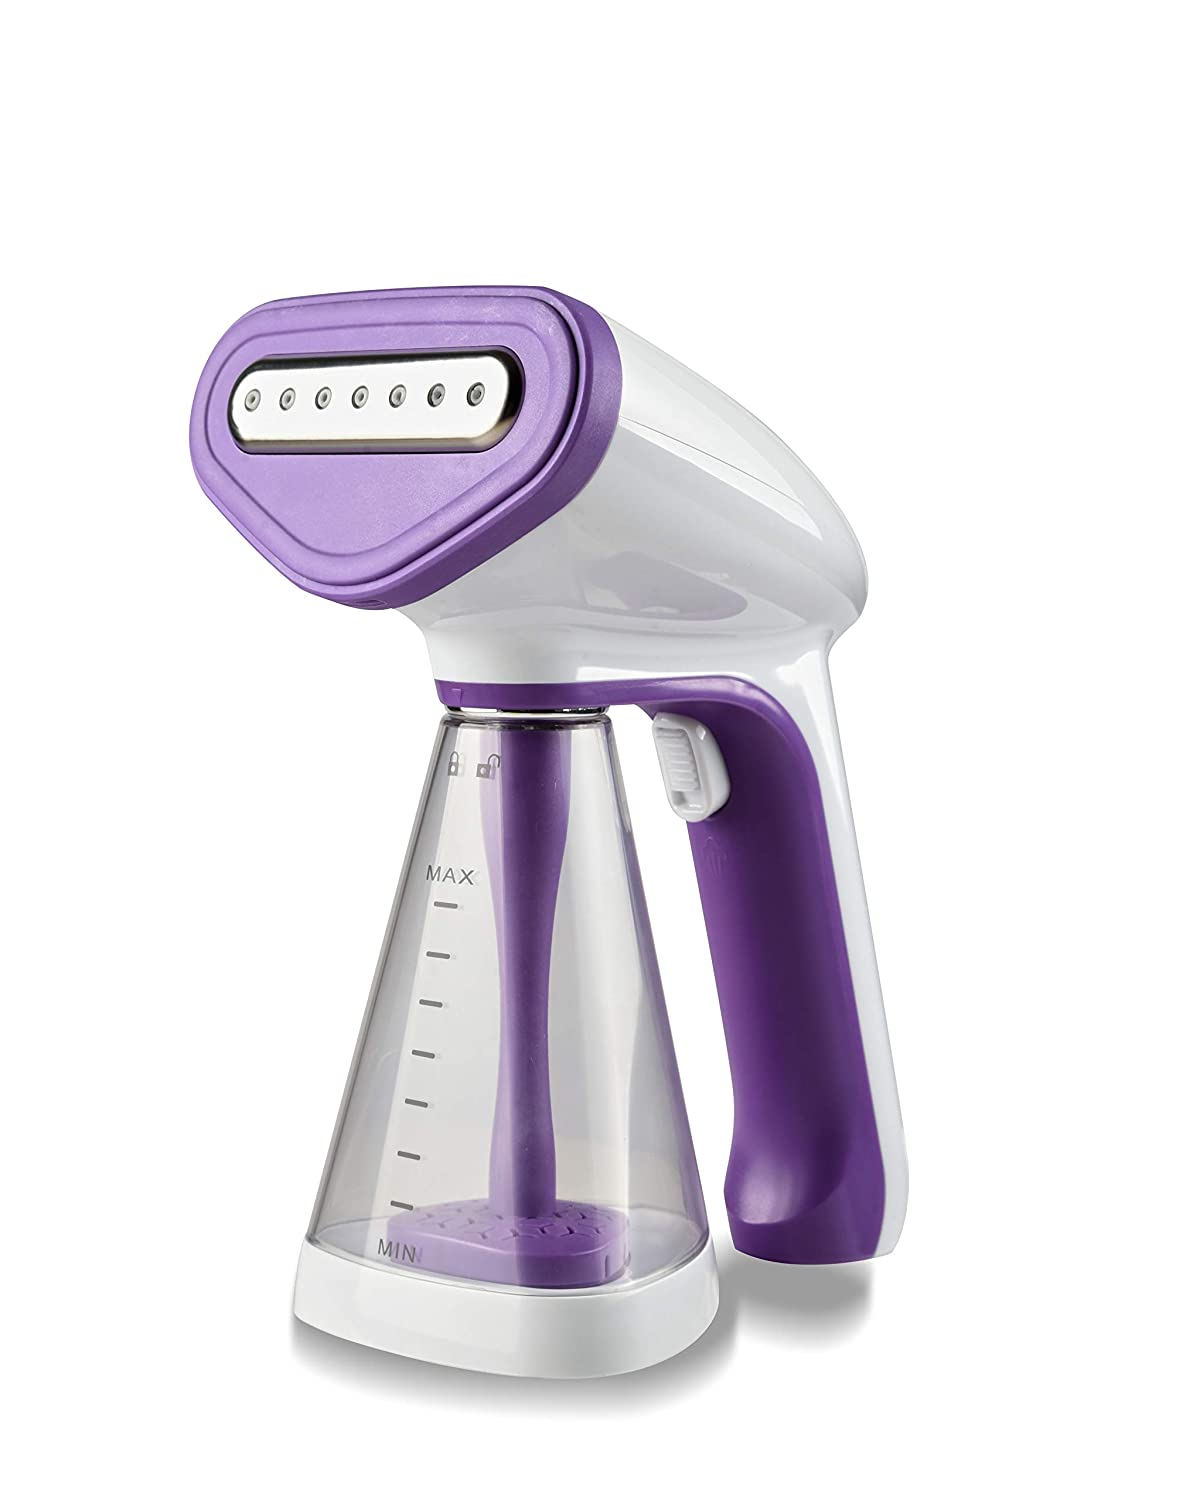 The The Sienna Vela Garment Steamer travel product recommended by Cindy Souza on Lifney.